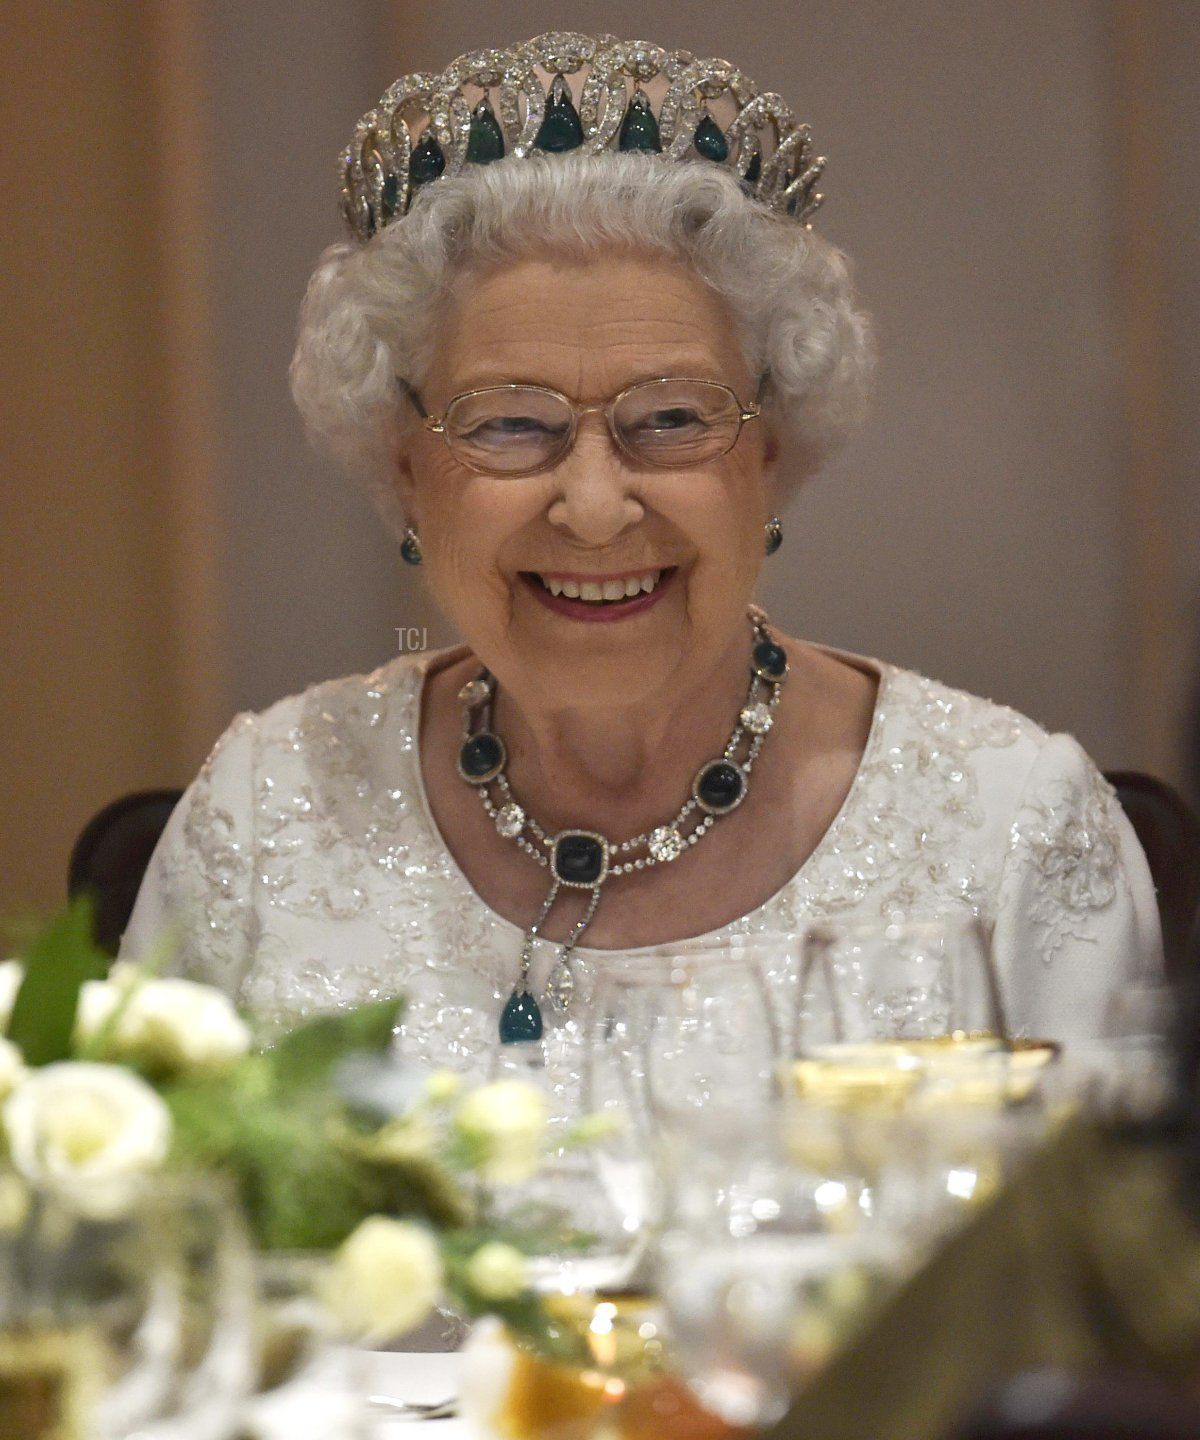 Queen Elizabeth II smiles as she attends a dinner at the Corinthia Palace Hotel in Attard during the Commonwealth Heads of Government Meeting (CHOGM) on November 27, 2015 near Valletta, Malta